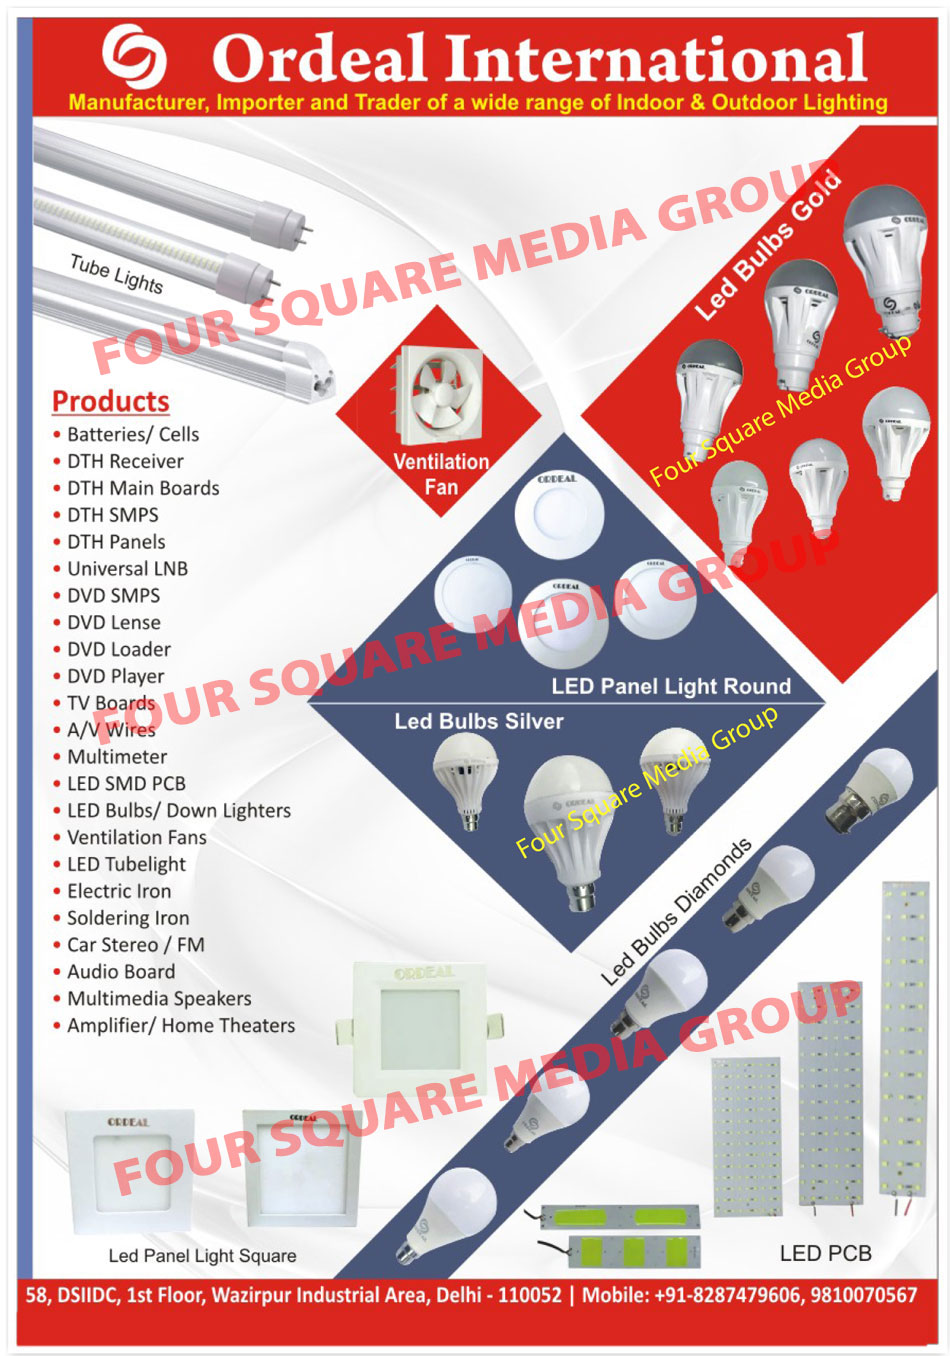 Led Lights, Indoor Lights, Outdoor Lights, Led Tube Lights, Led Bulbs, Ventilation Fan, Round Led Panel Lights, Led PCB, Led Printed Circuit Board, Square Led Panel Lights, Amplifier, Home Theater, Multimedia Speakers, Multi Media Speakers, Audio Board, Car Stereo, Car FM, Soldering Iron, Electric Iron, Led Down Lighter, Led SMD PCB, Led SMD Printed Circuit Board, Multimeter, Multi Meter, AV Wires, TV Boards, DVD Player, DVD Loader, DVD Lenses, DVD SMPS, Universal LNB, DTH Panels, DTH SMPS, DTH Main Boards, DTH Receiver, Batteries, Cells, Battery